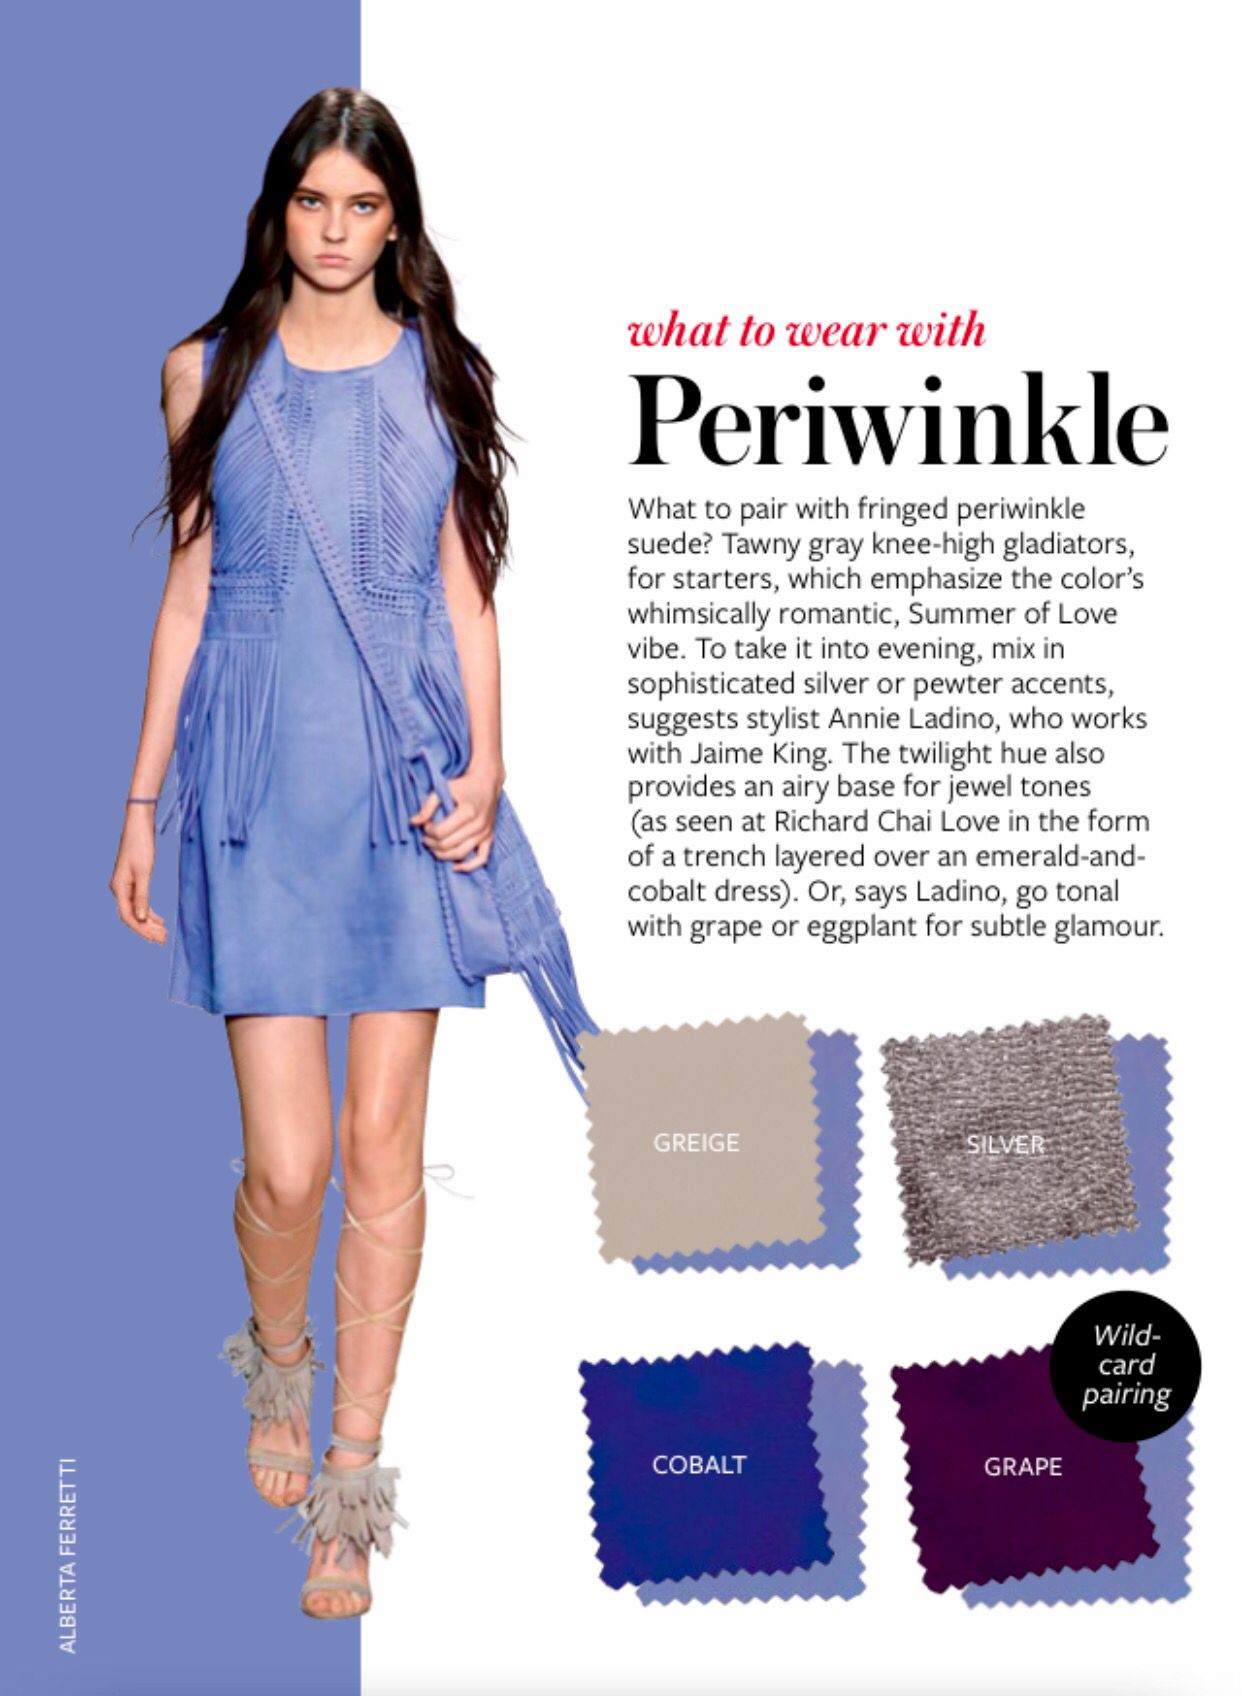 Iz October 16 Solid Periwinkle Dress Or Solid Colored Shirt Or